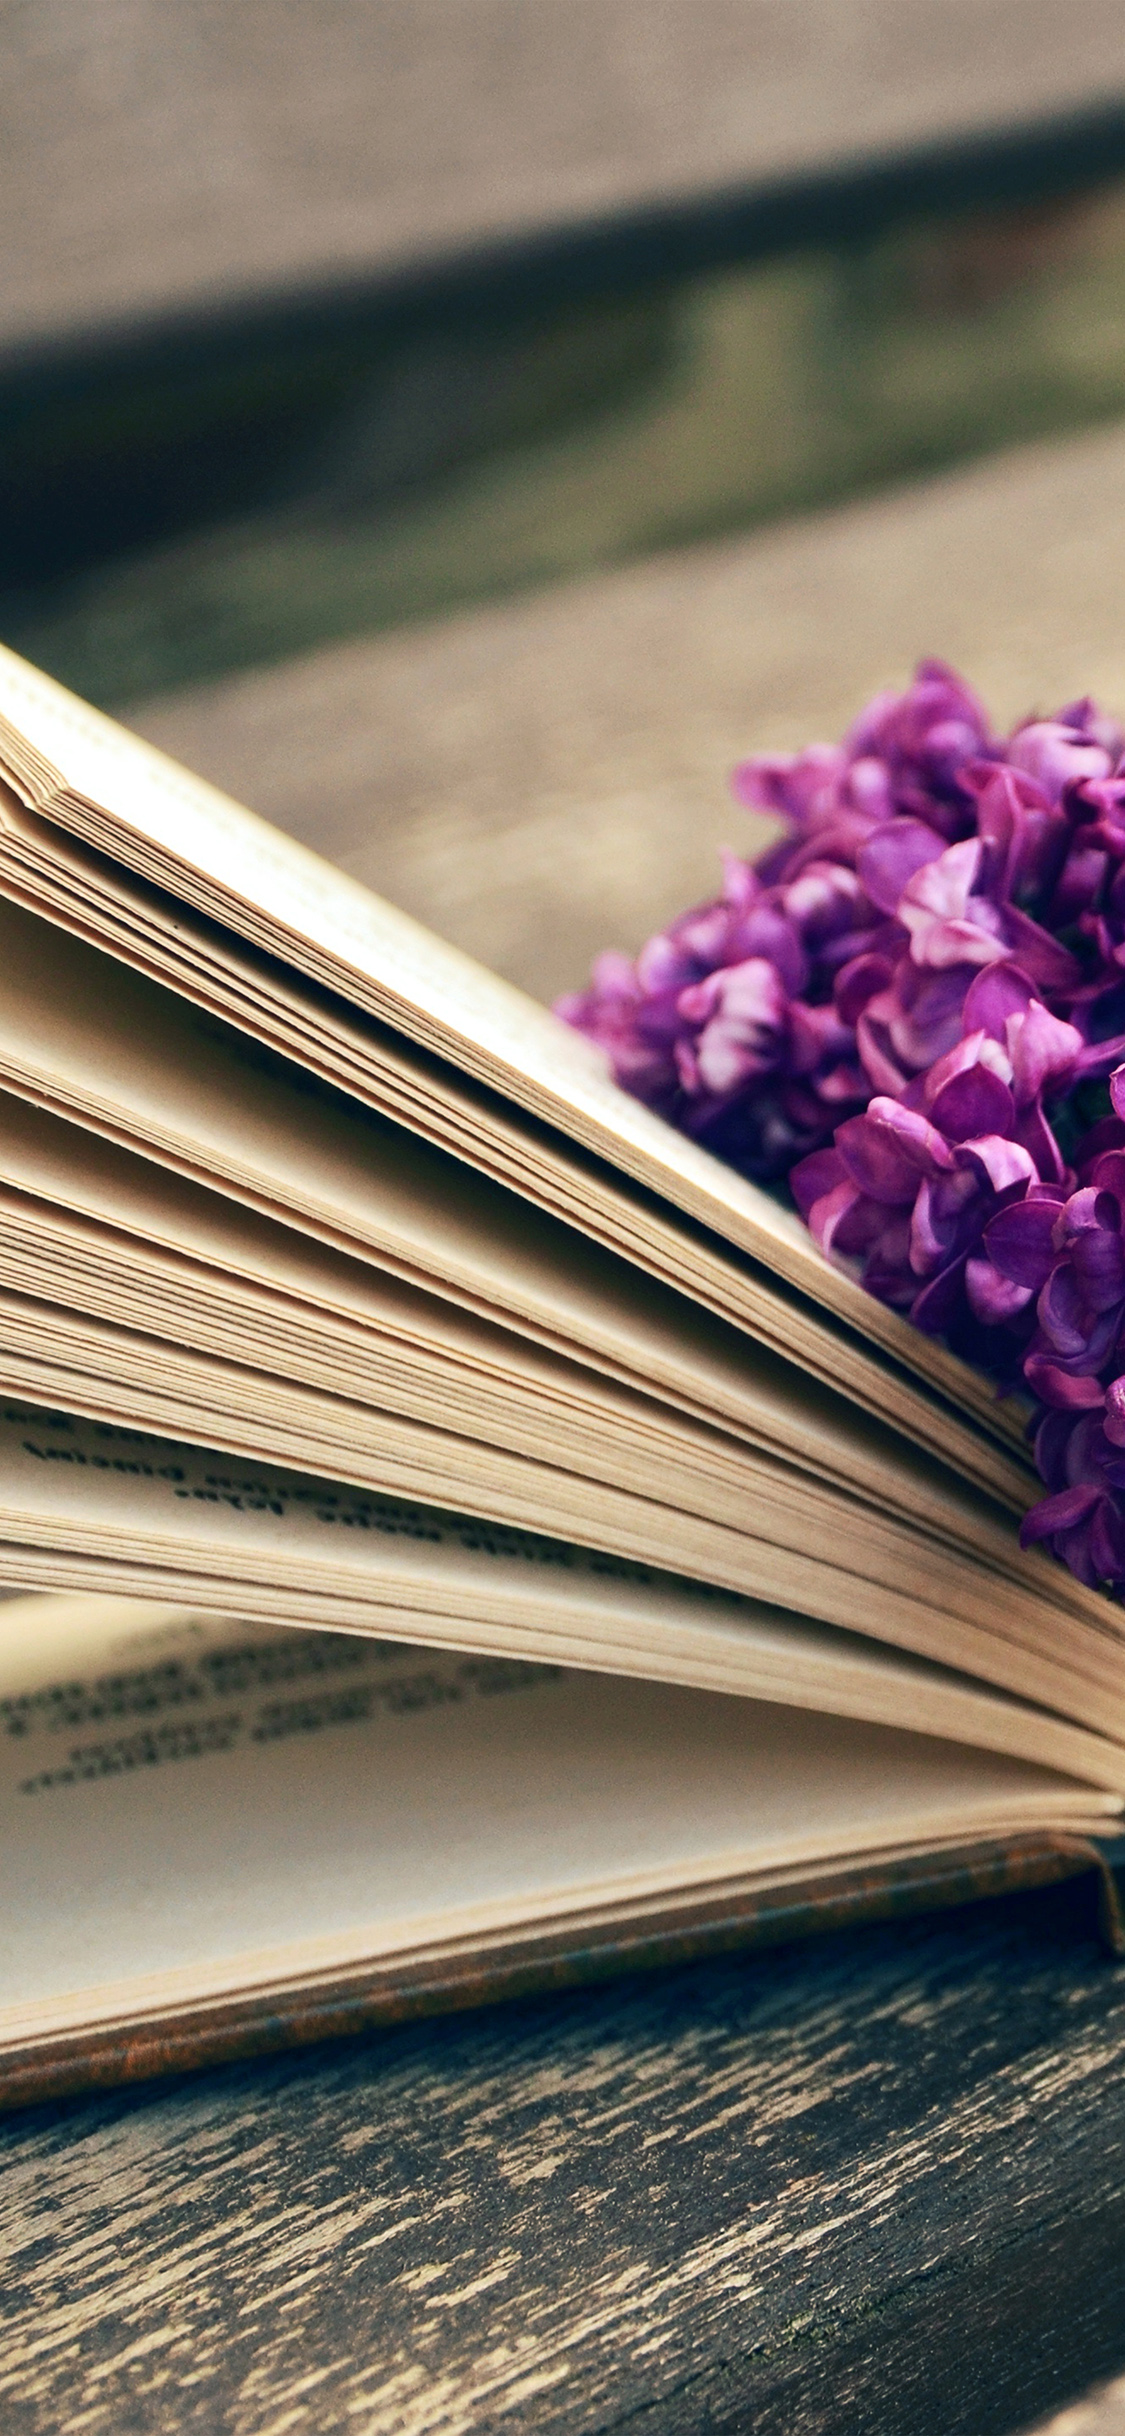 iPhoneXpapers.com-Apple-iPhone-wallpaper-ni24-book-read-time-flower-flare-purple